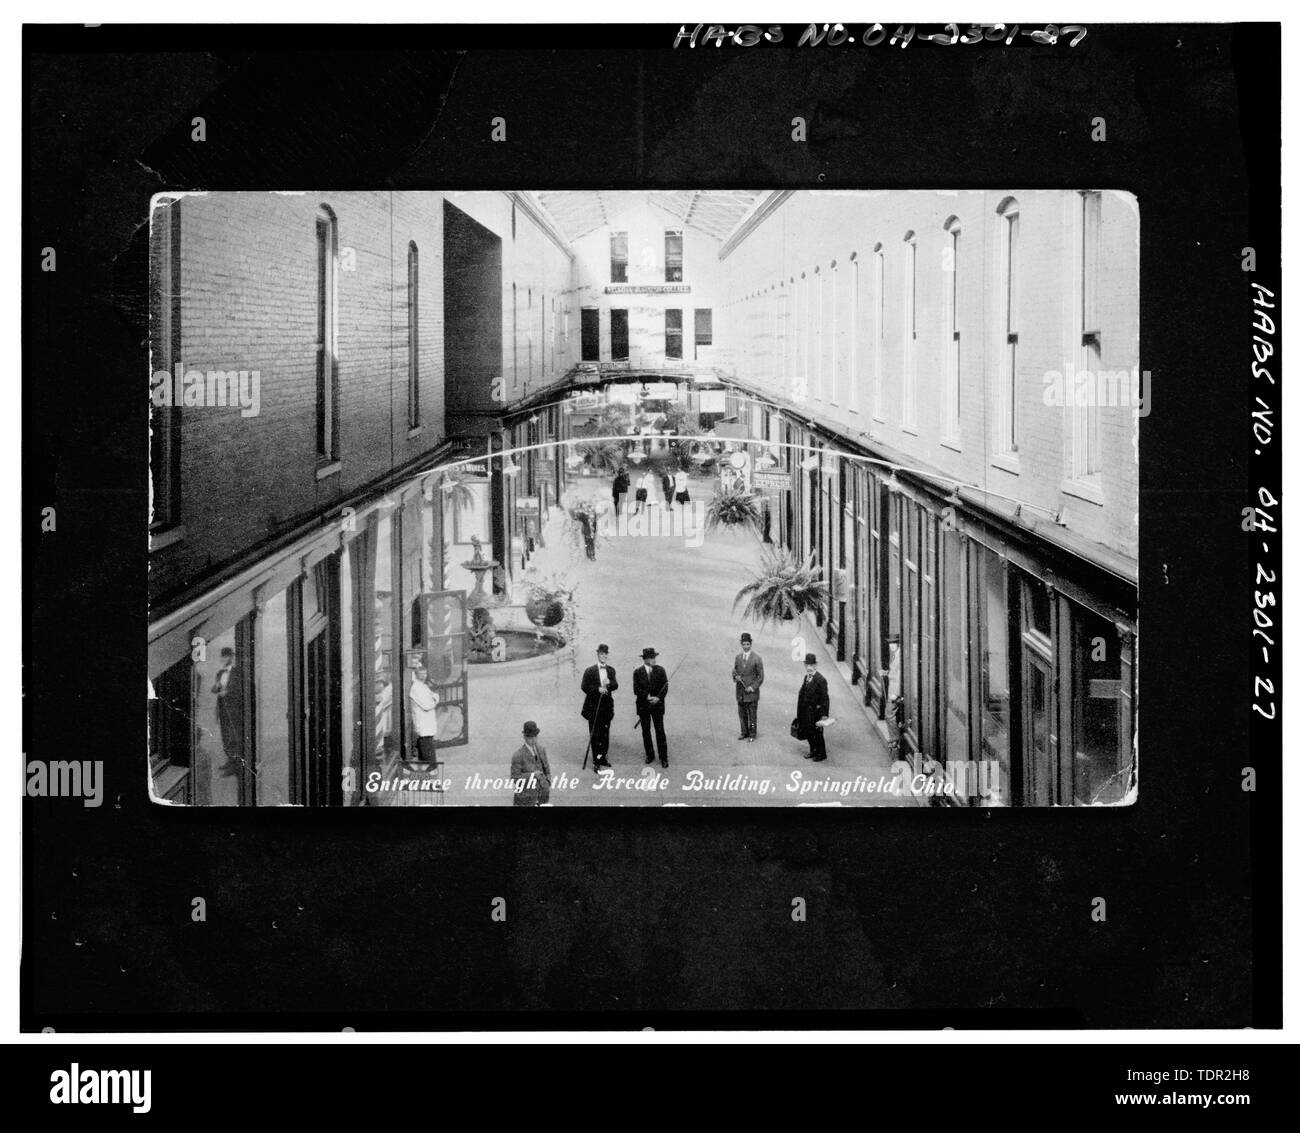 Photograph of postcard (from the Clark County Historical Society, Springfield, Ohio, postmark 3-18-1910) ENTRANCE THROUGH THE ARCADE BUILDING, VIEW NORTH OF INTERIOR - Arcade Hotel, Fountain Avenue, bounded by High and Washington Streets, Springfield, Clark County, OH - Stock Image